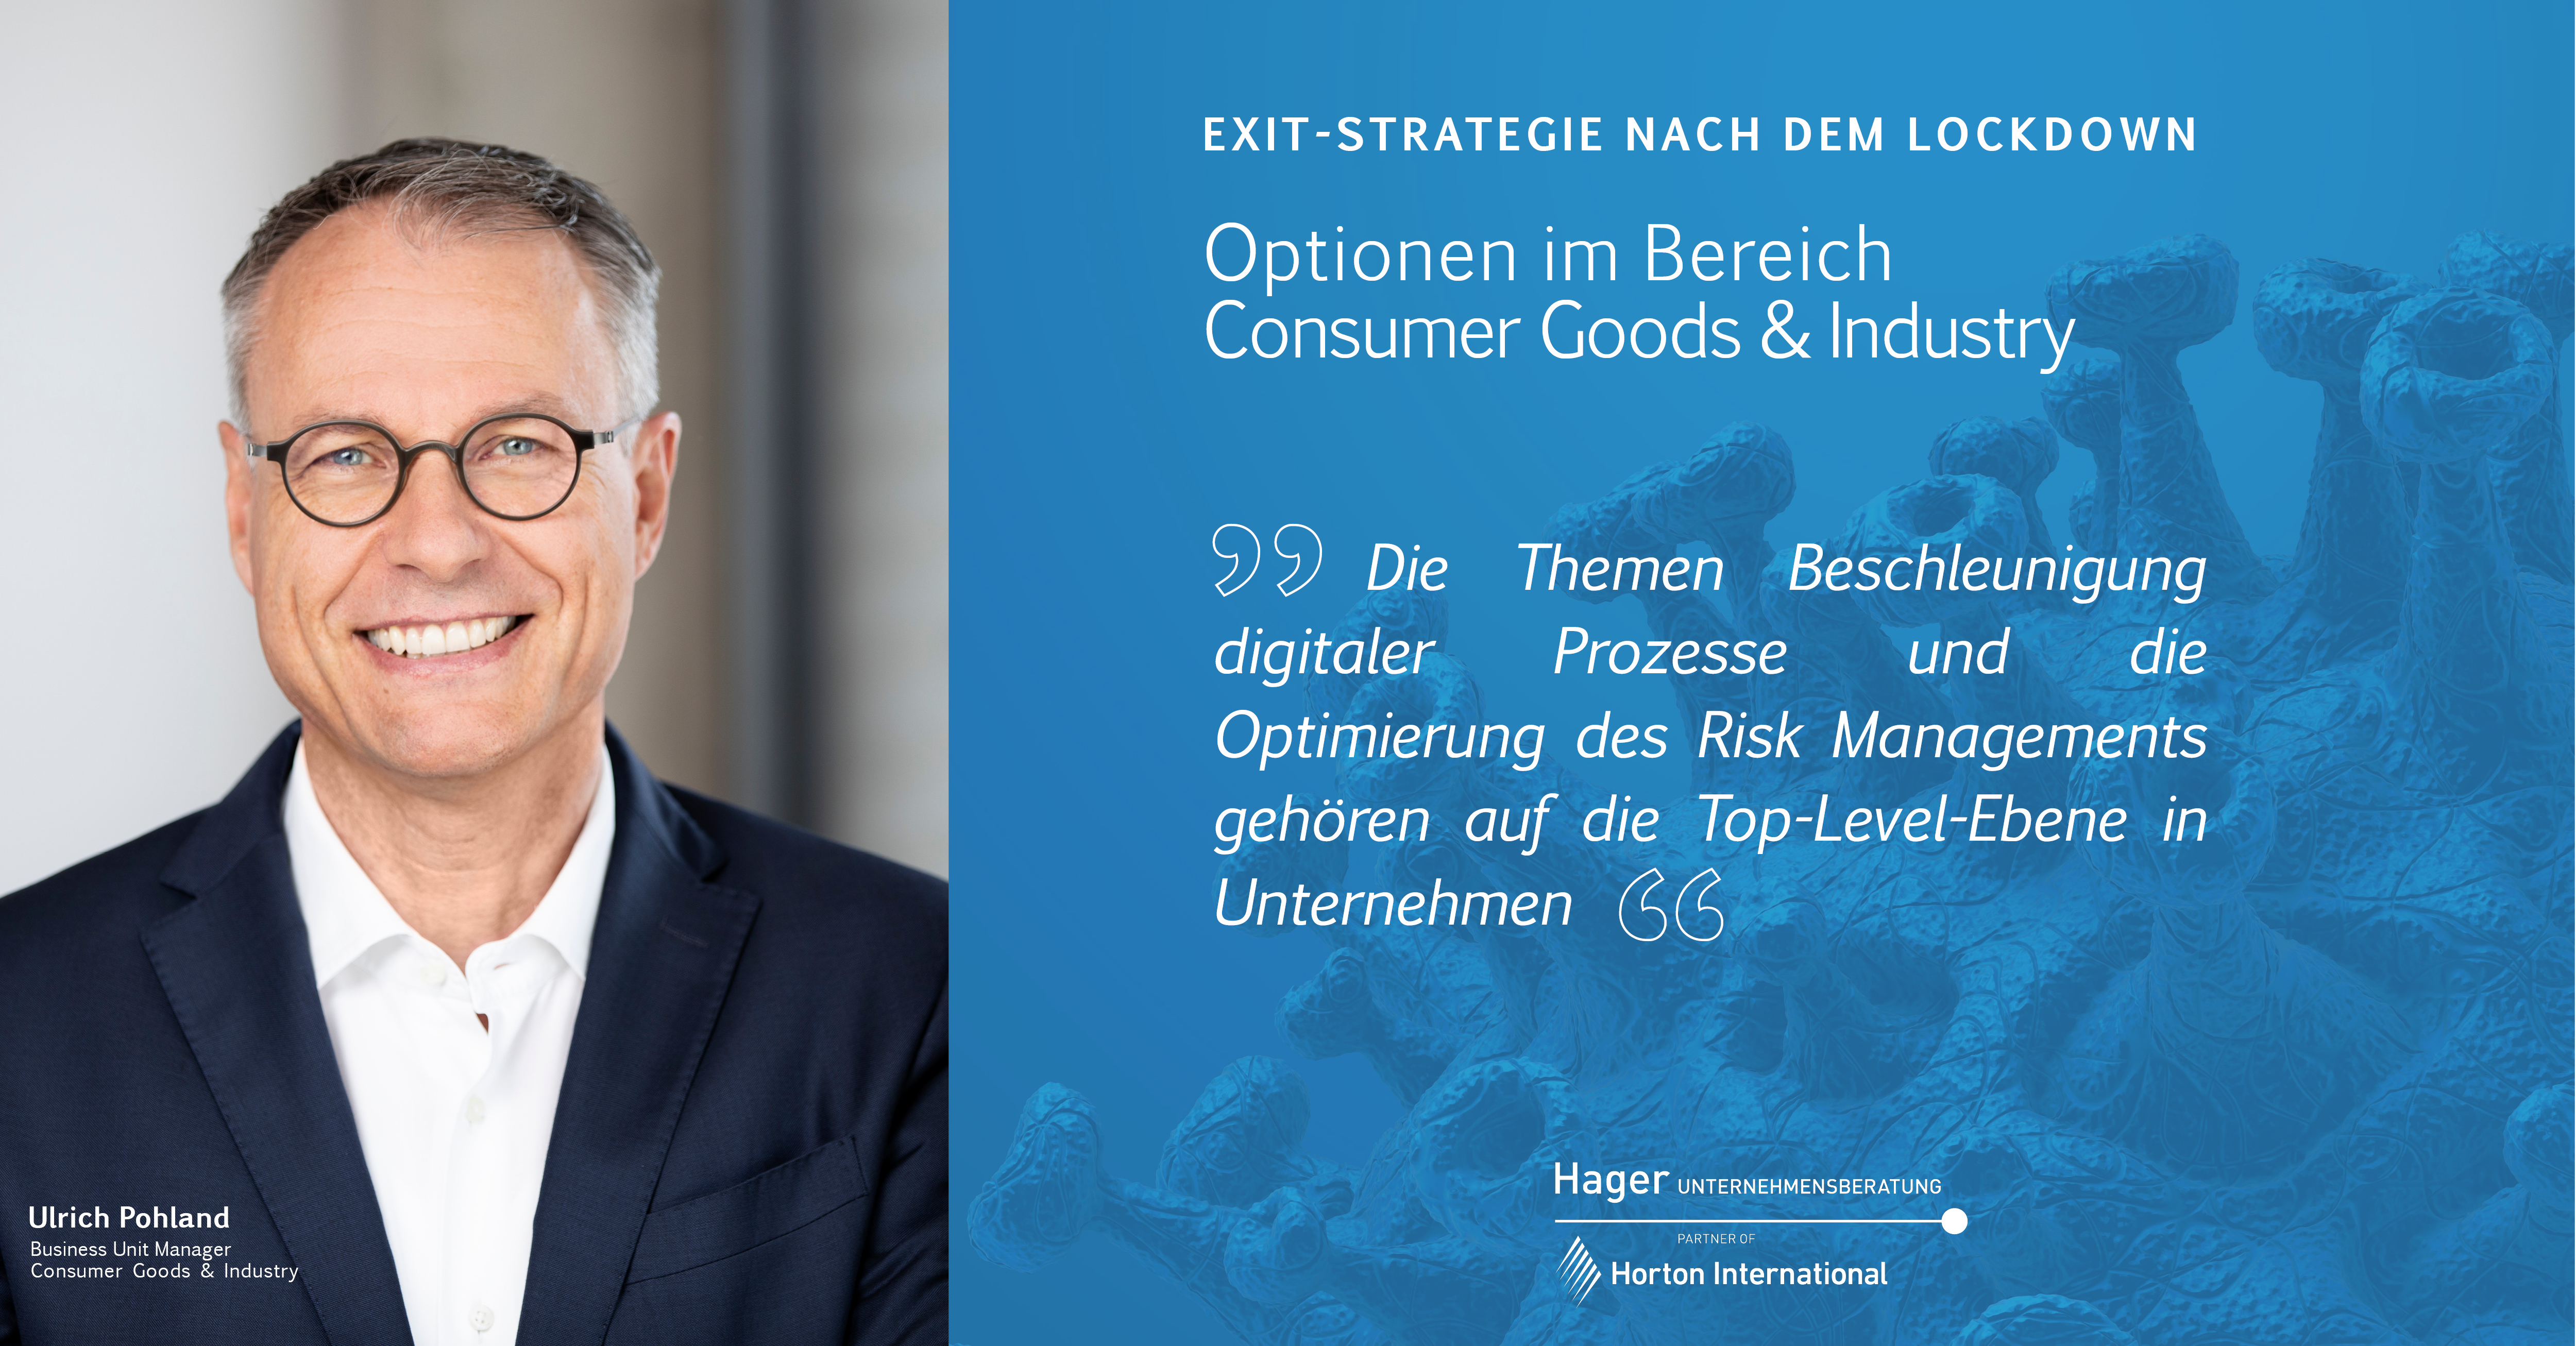 Exit-Strategie nach dem Lockdown – Consumer Goods & Industry